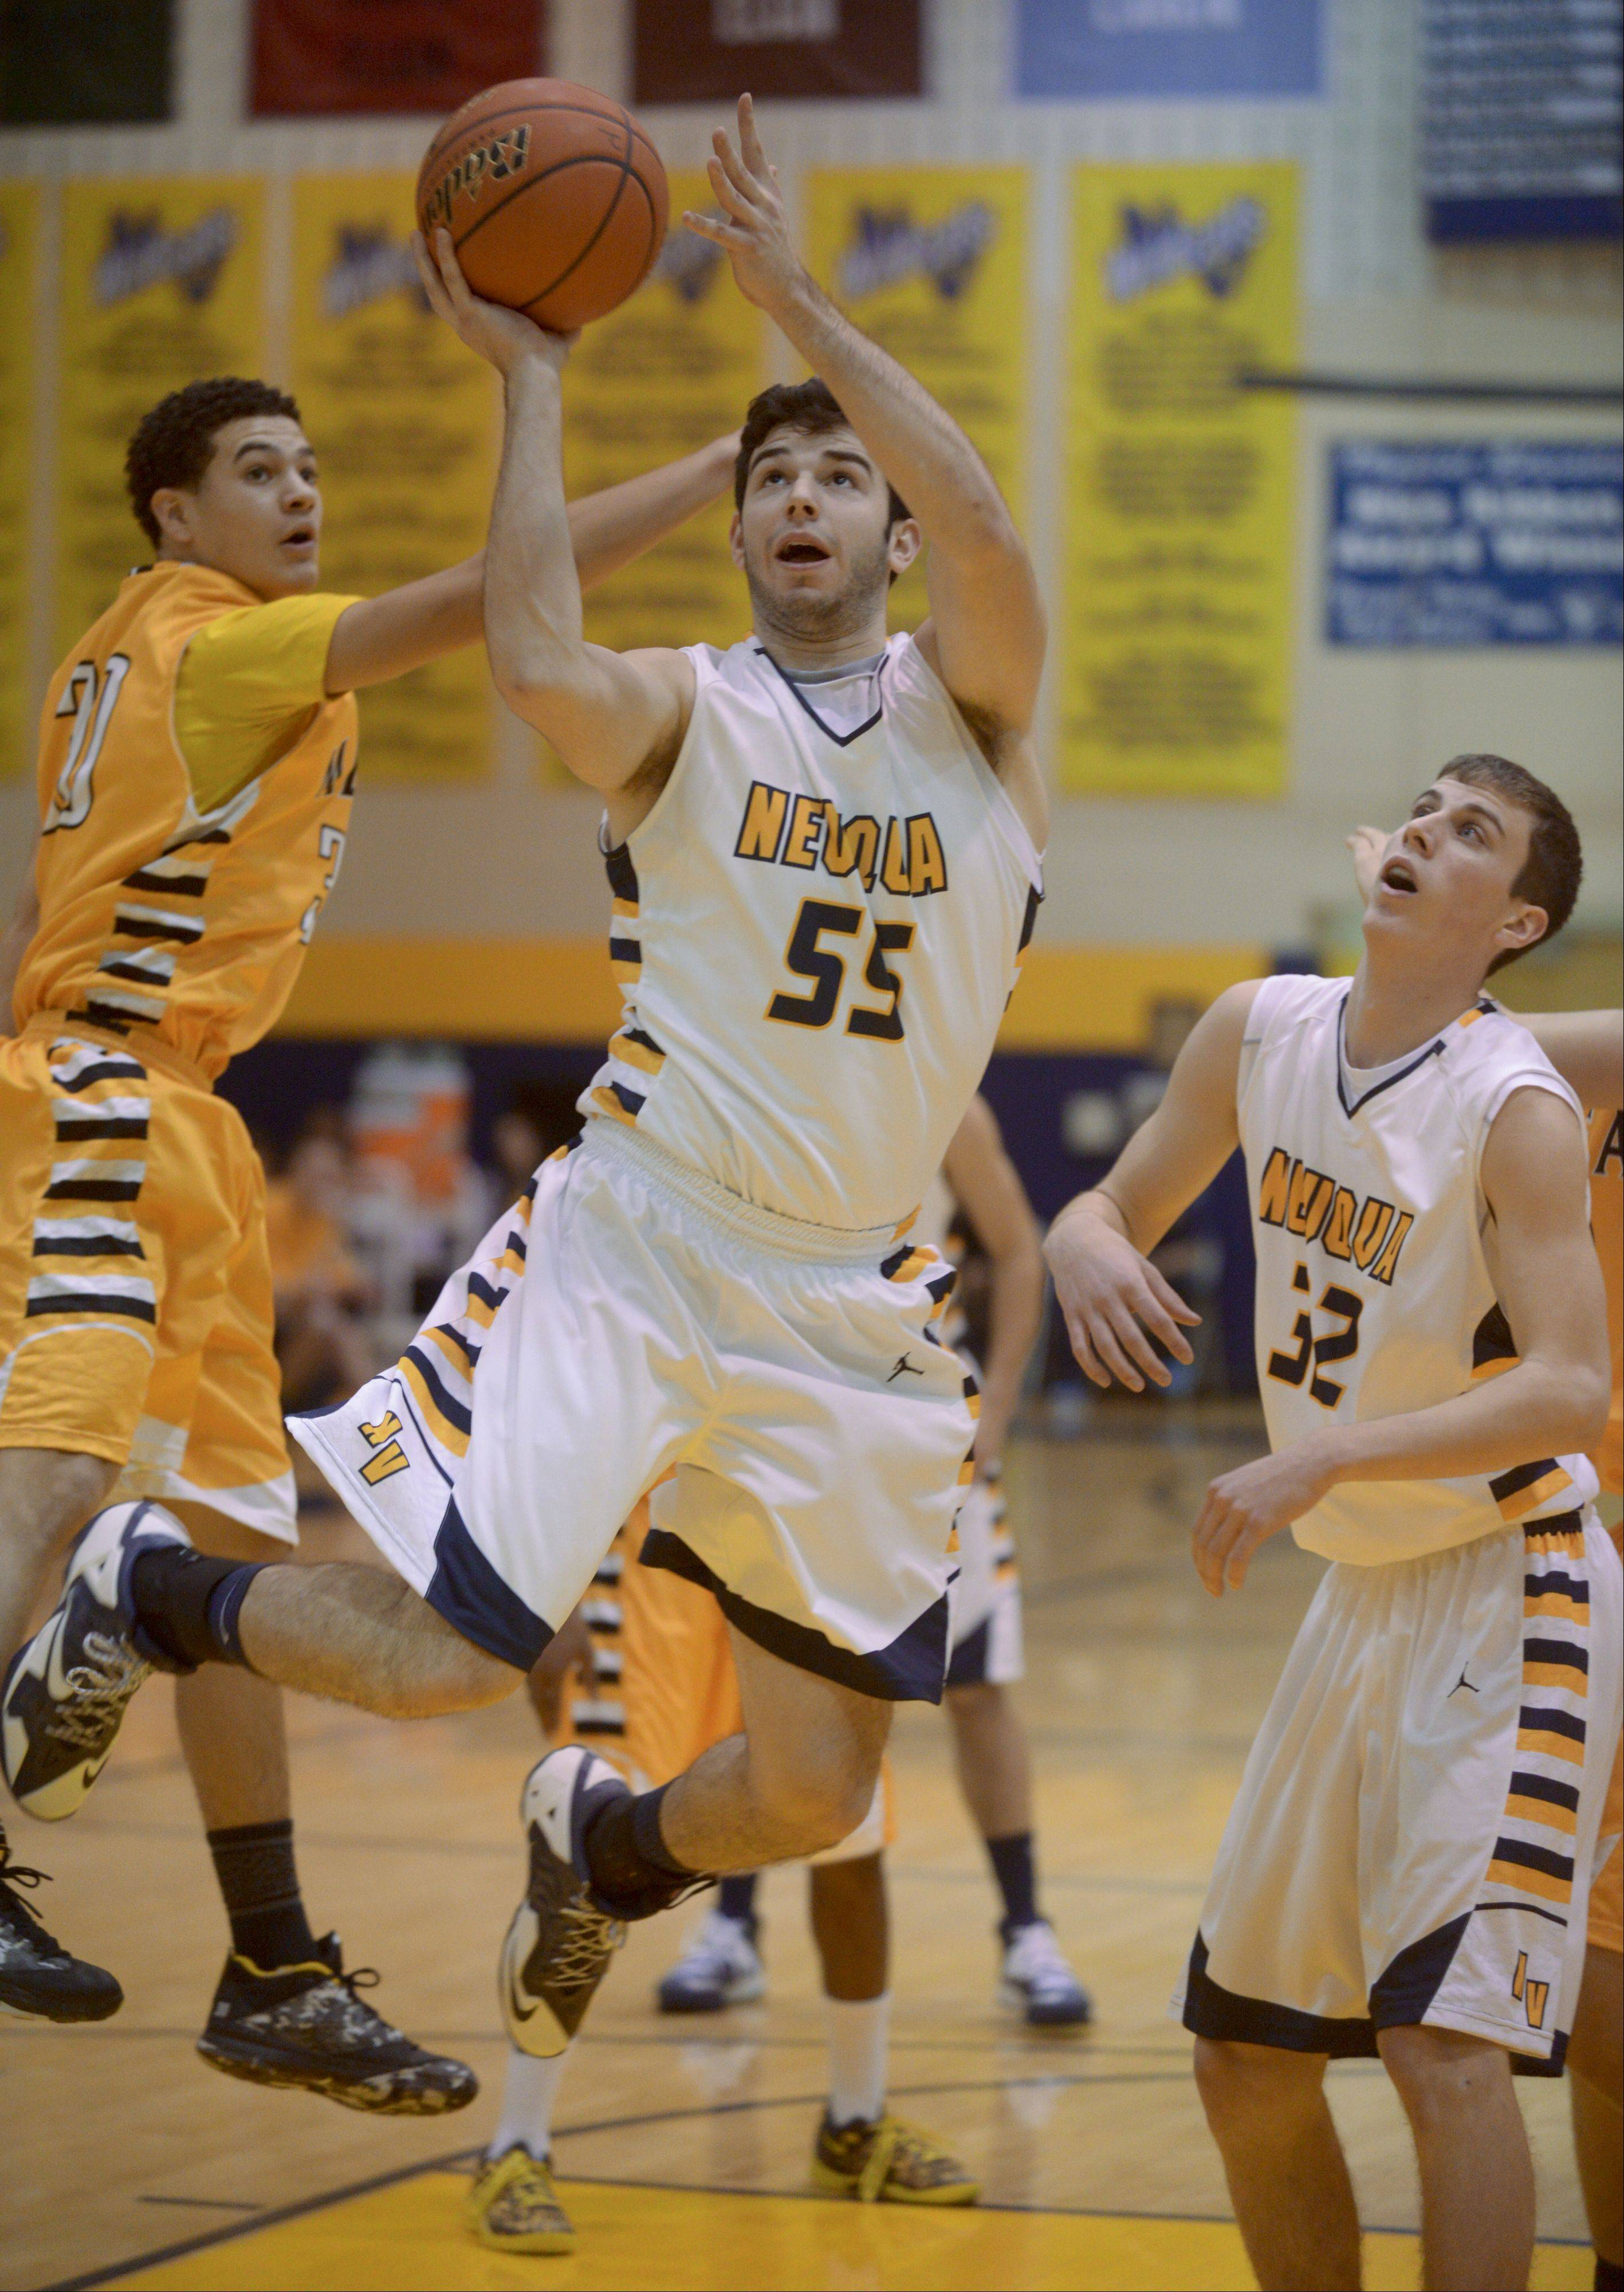 Zach Incaudo of Neuqua Valley takes a shot against Metea Valley.